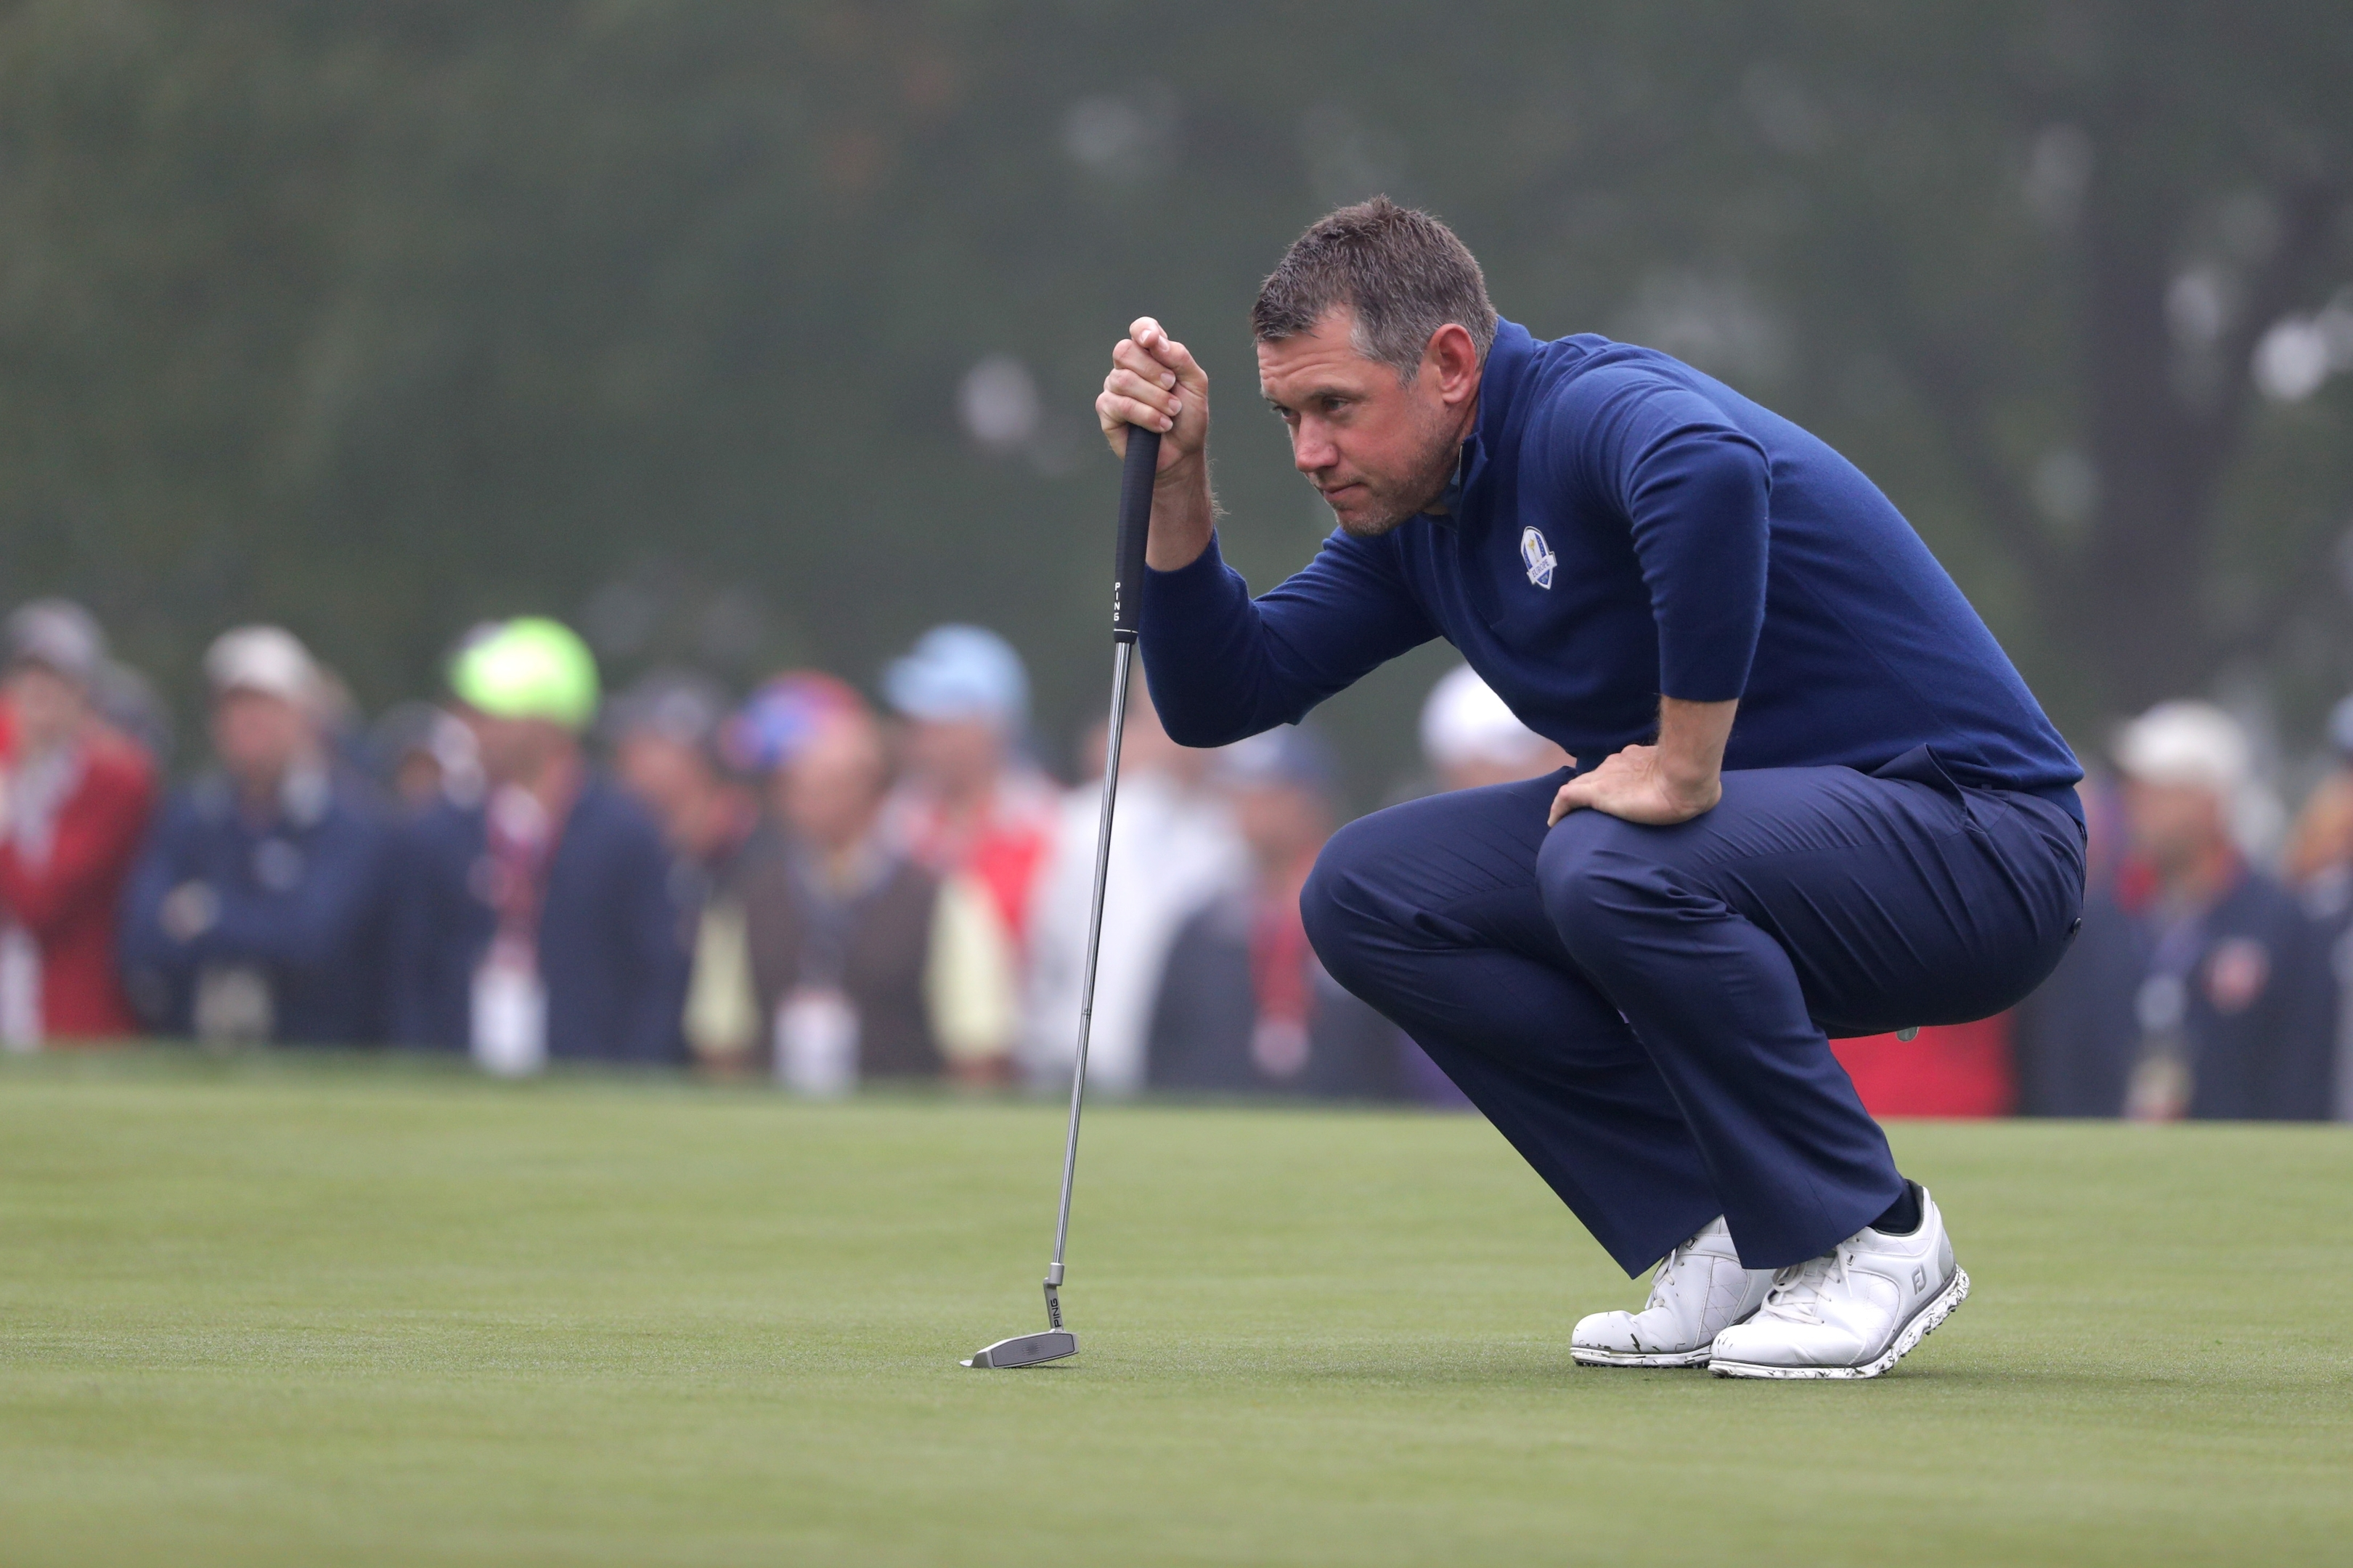 Lee Westwood of Europe lines up a putt